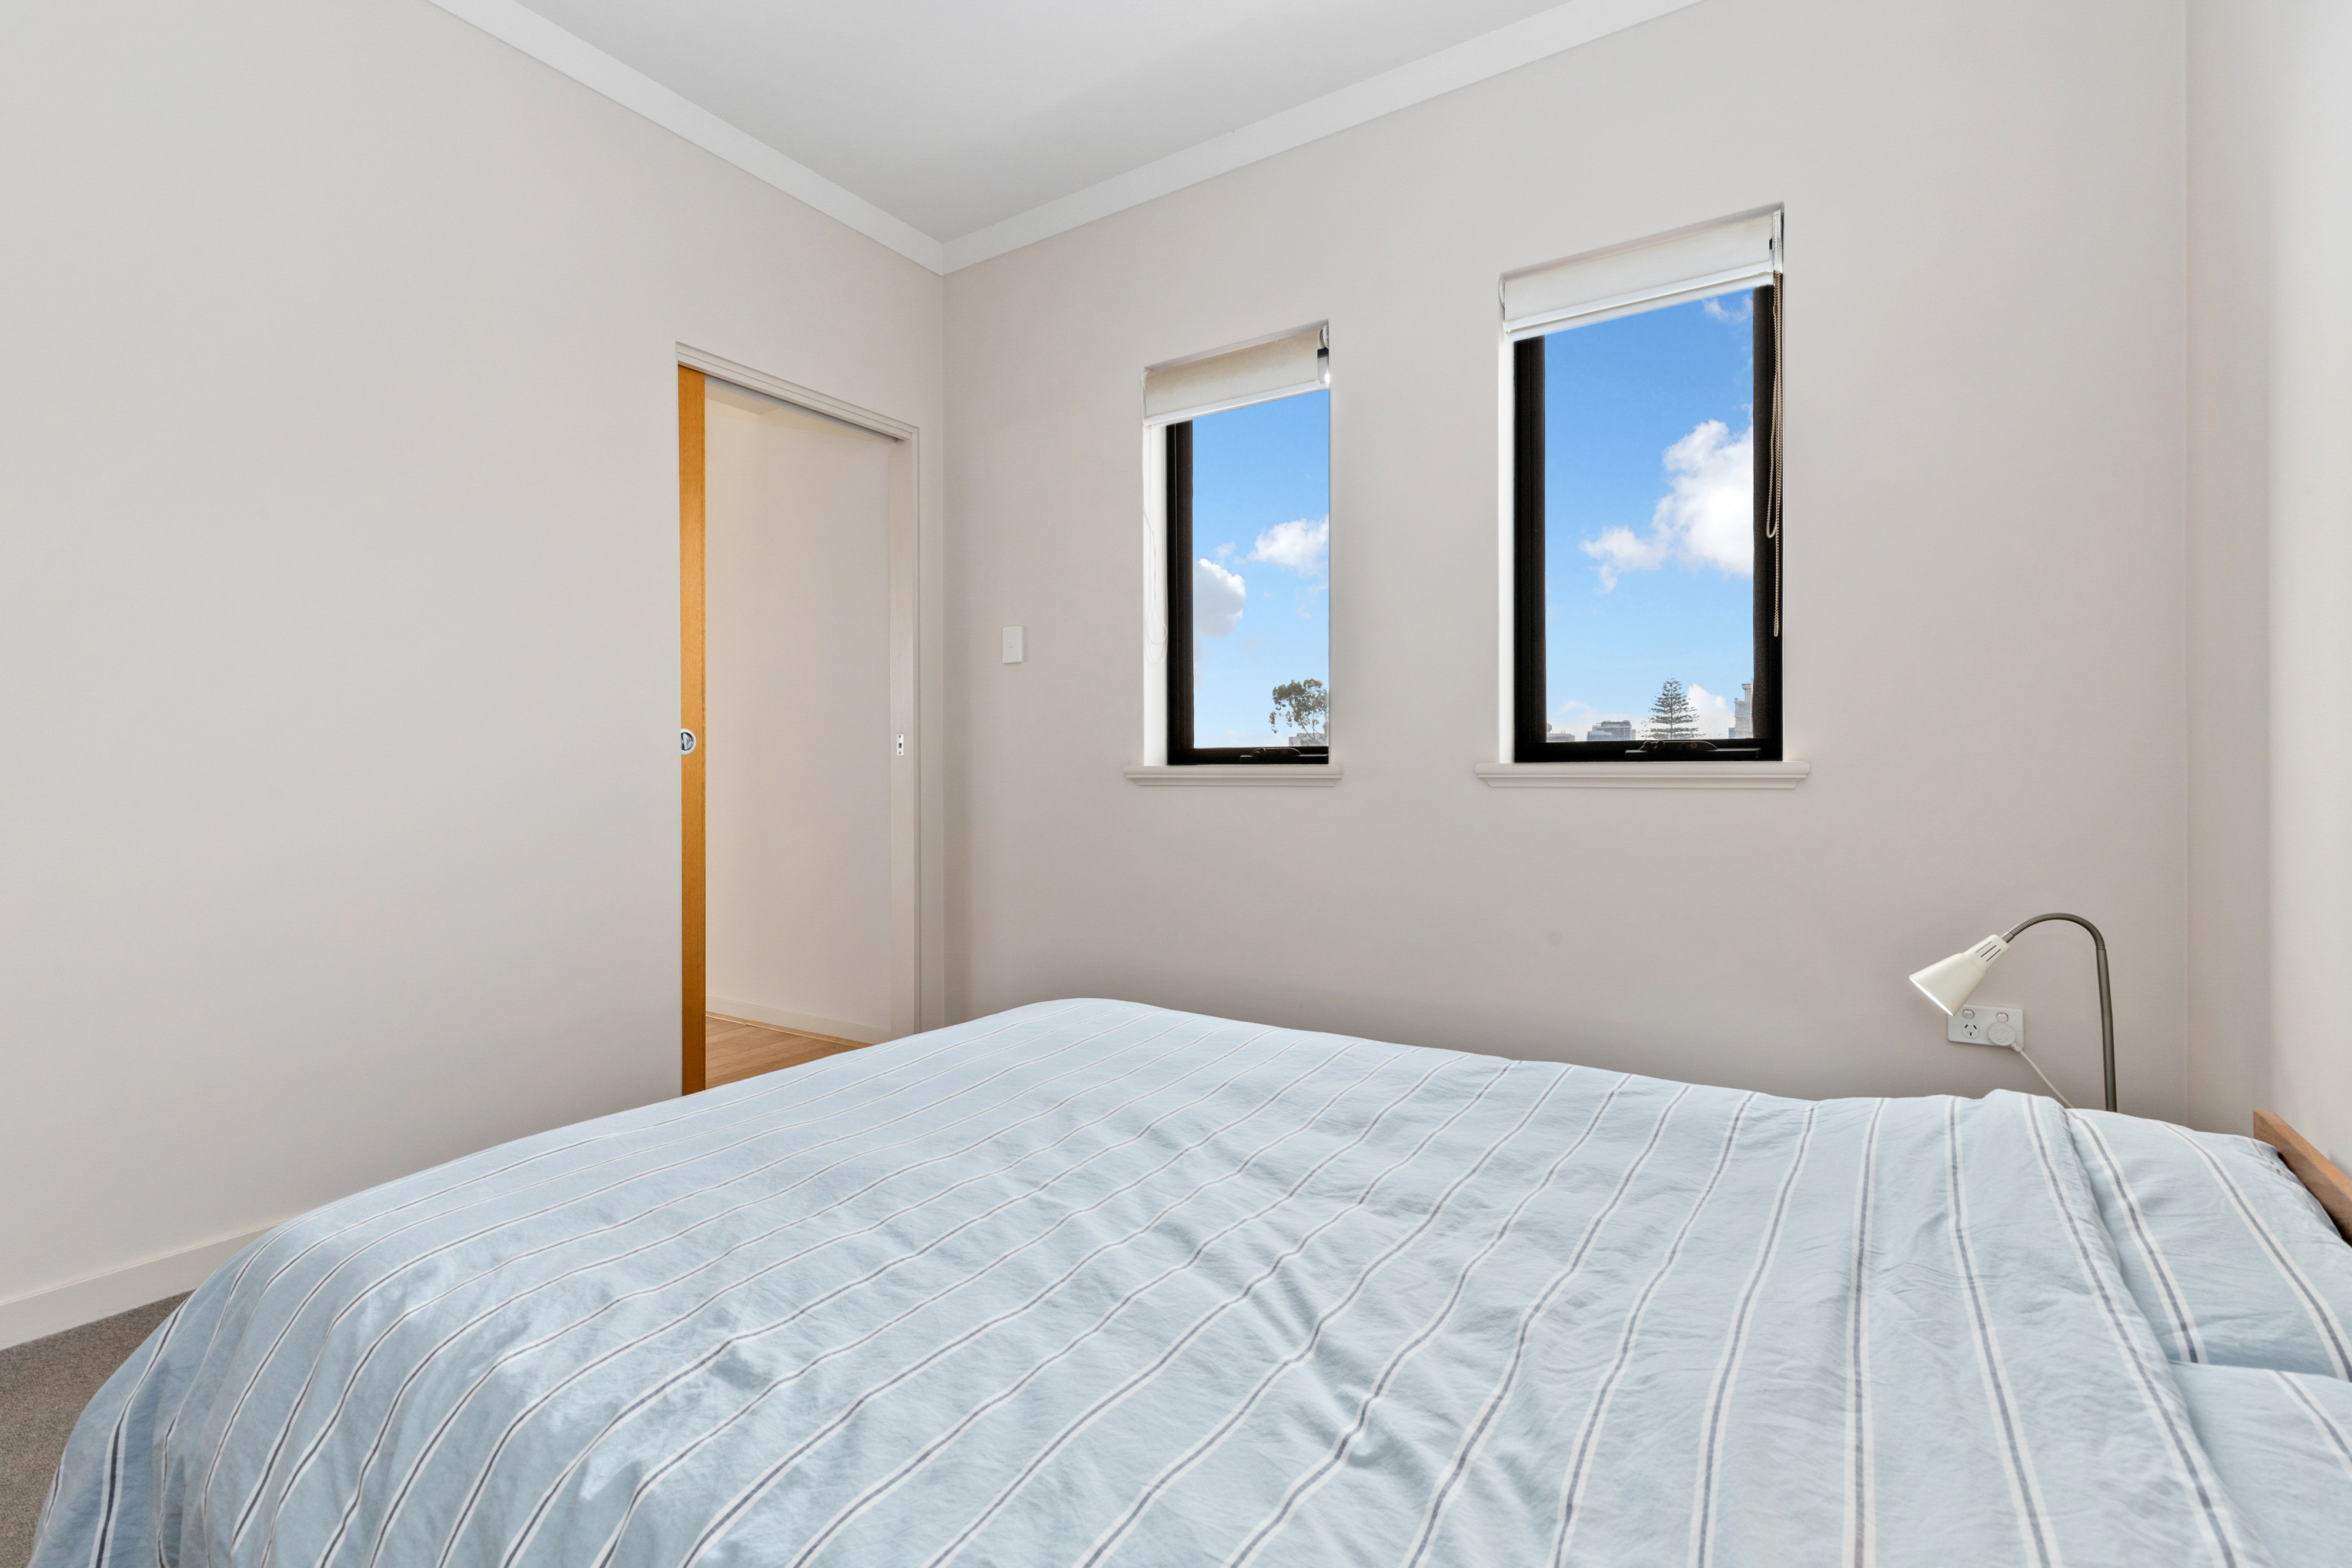 PRINT 404 48 Outram St, West Perth 07